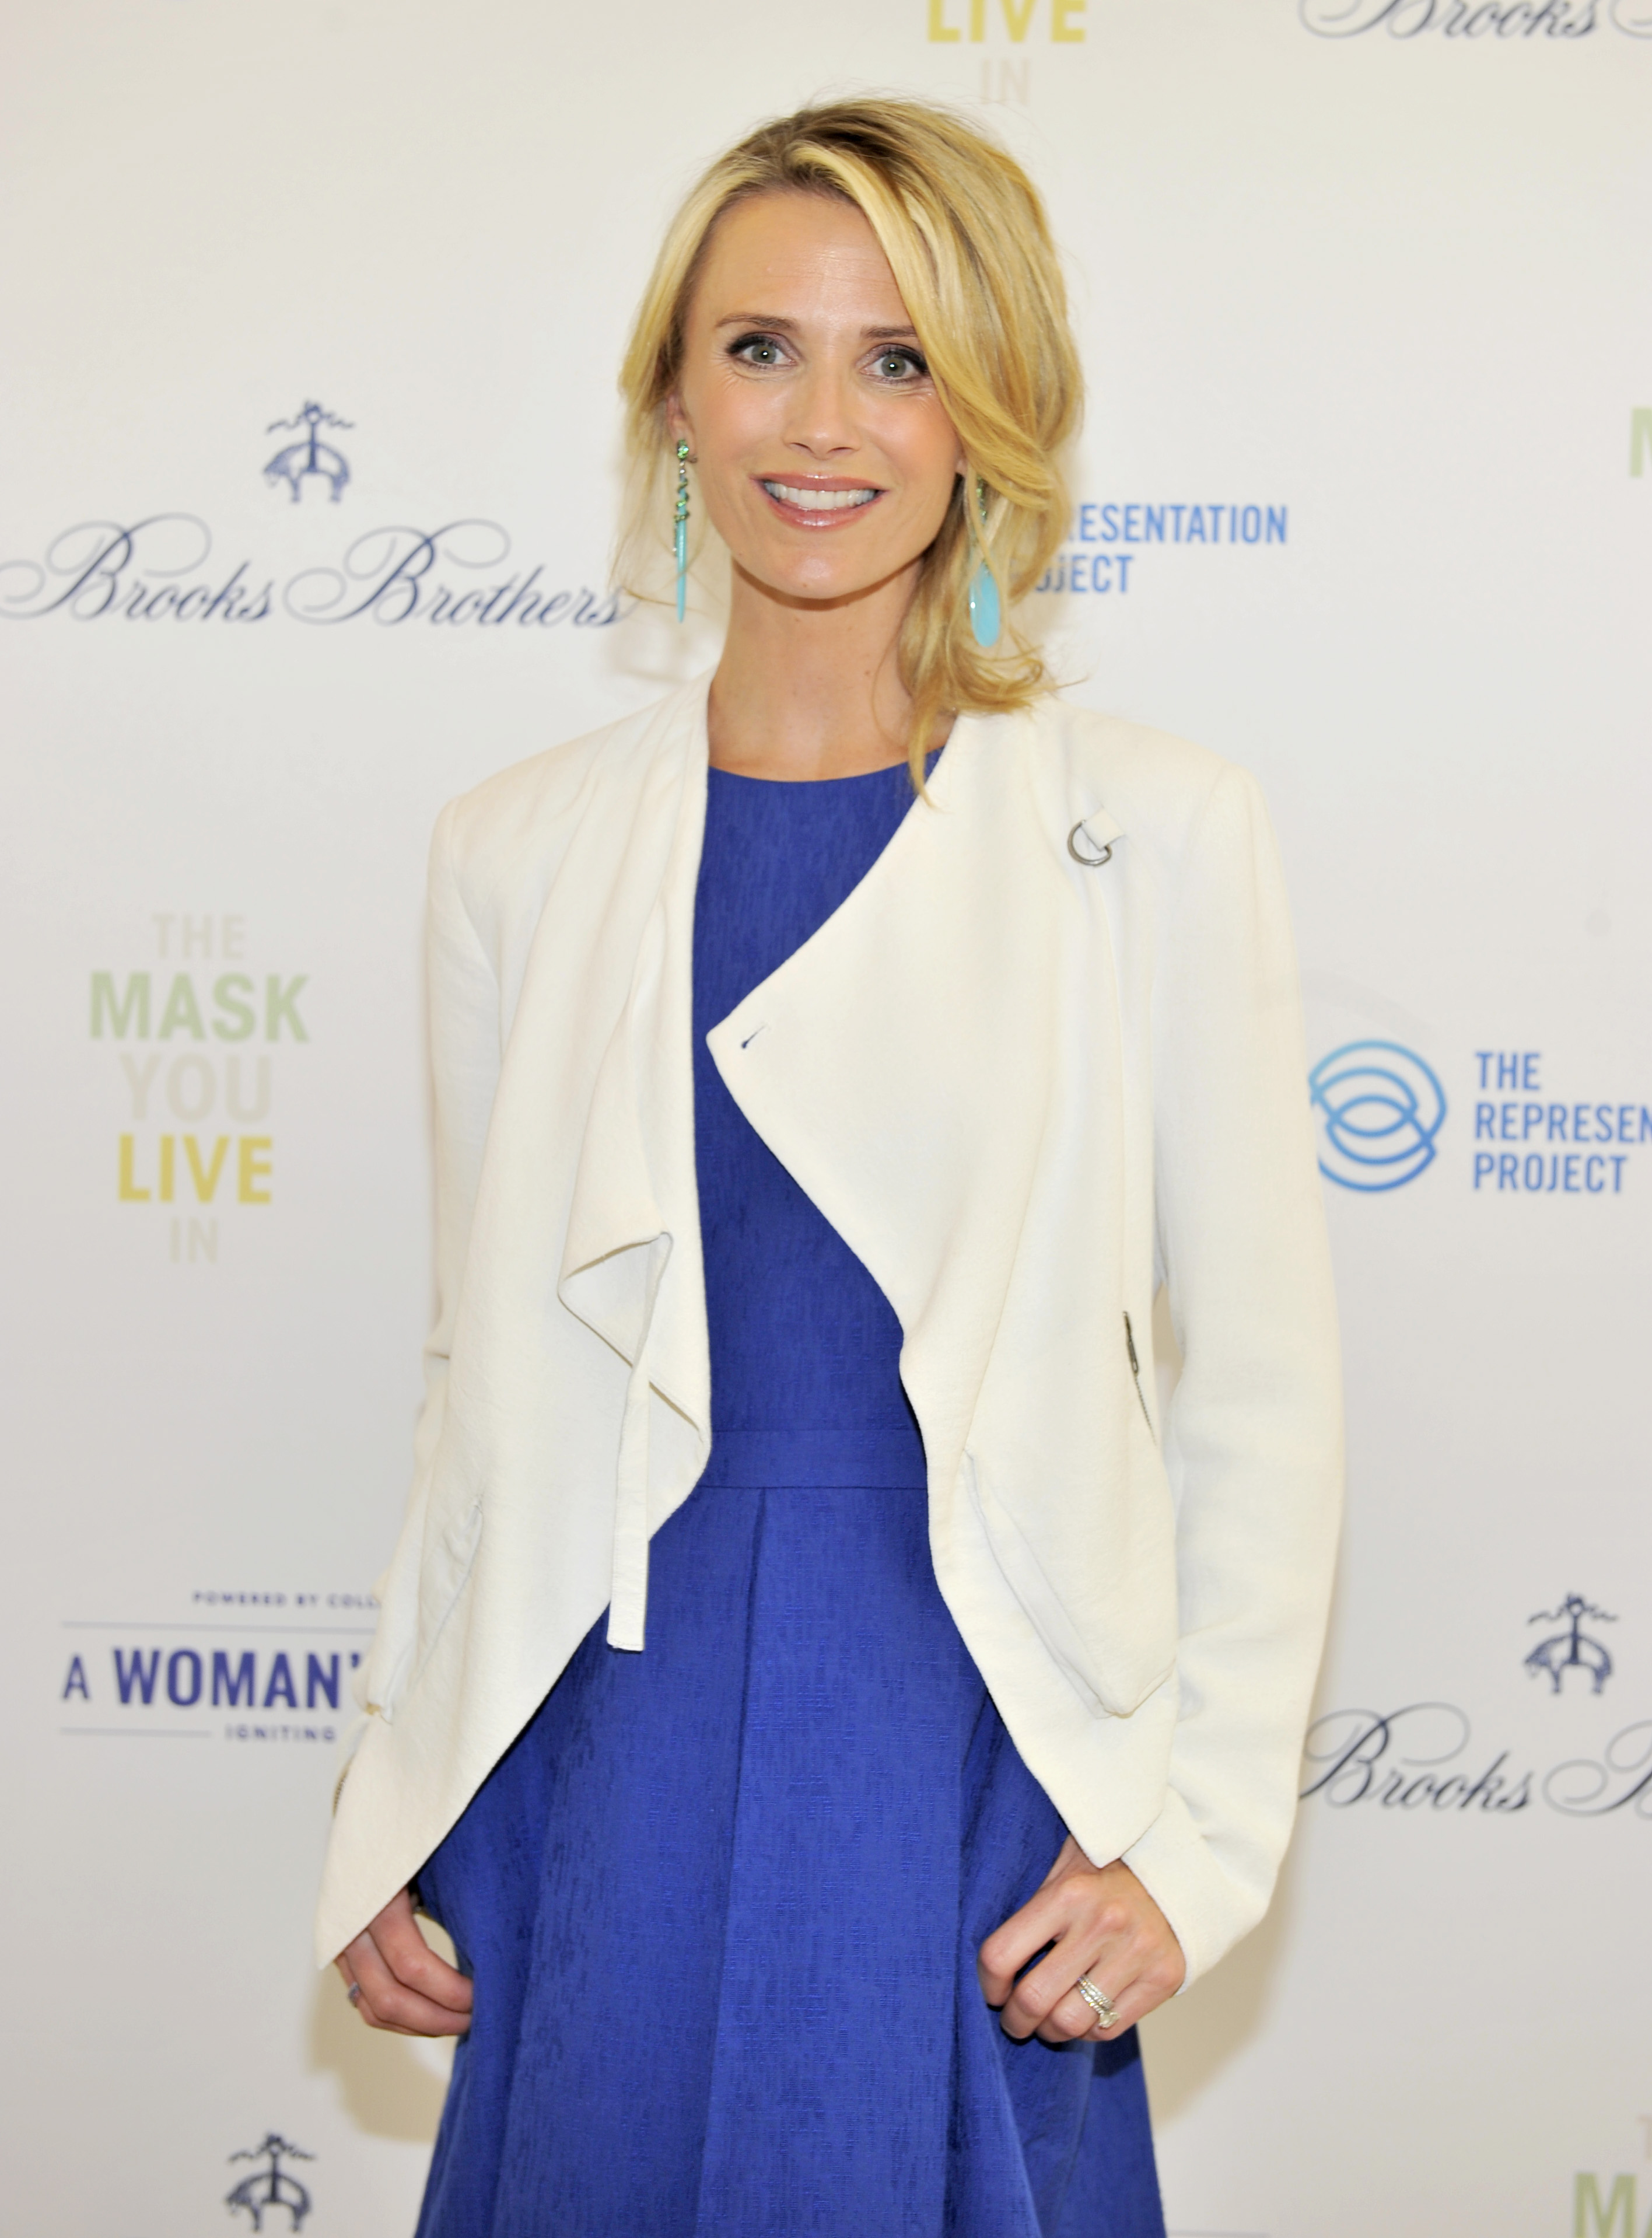 Director Jennifer Siebel Newsom attends as Brooks Brothers presents  The Mask You Live In  Los Angeles premiere at the Paley Center on April 23, 2015 in Beverly Hills, California.